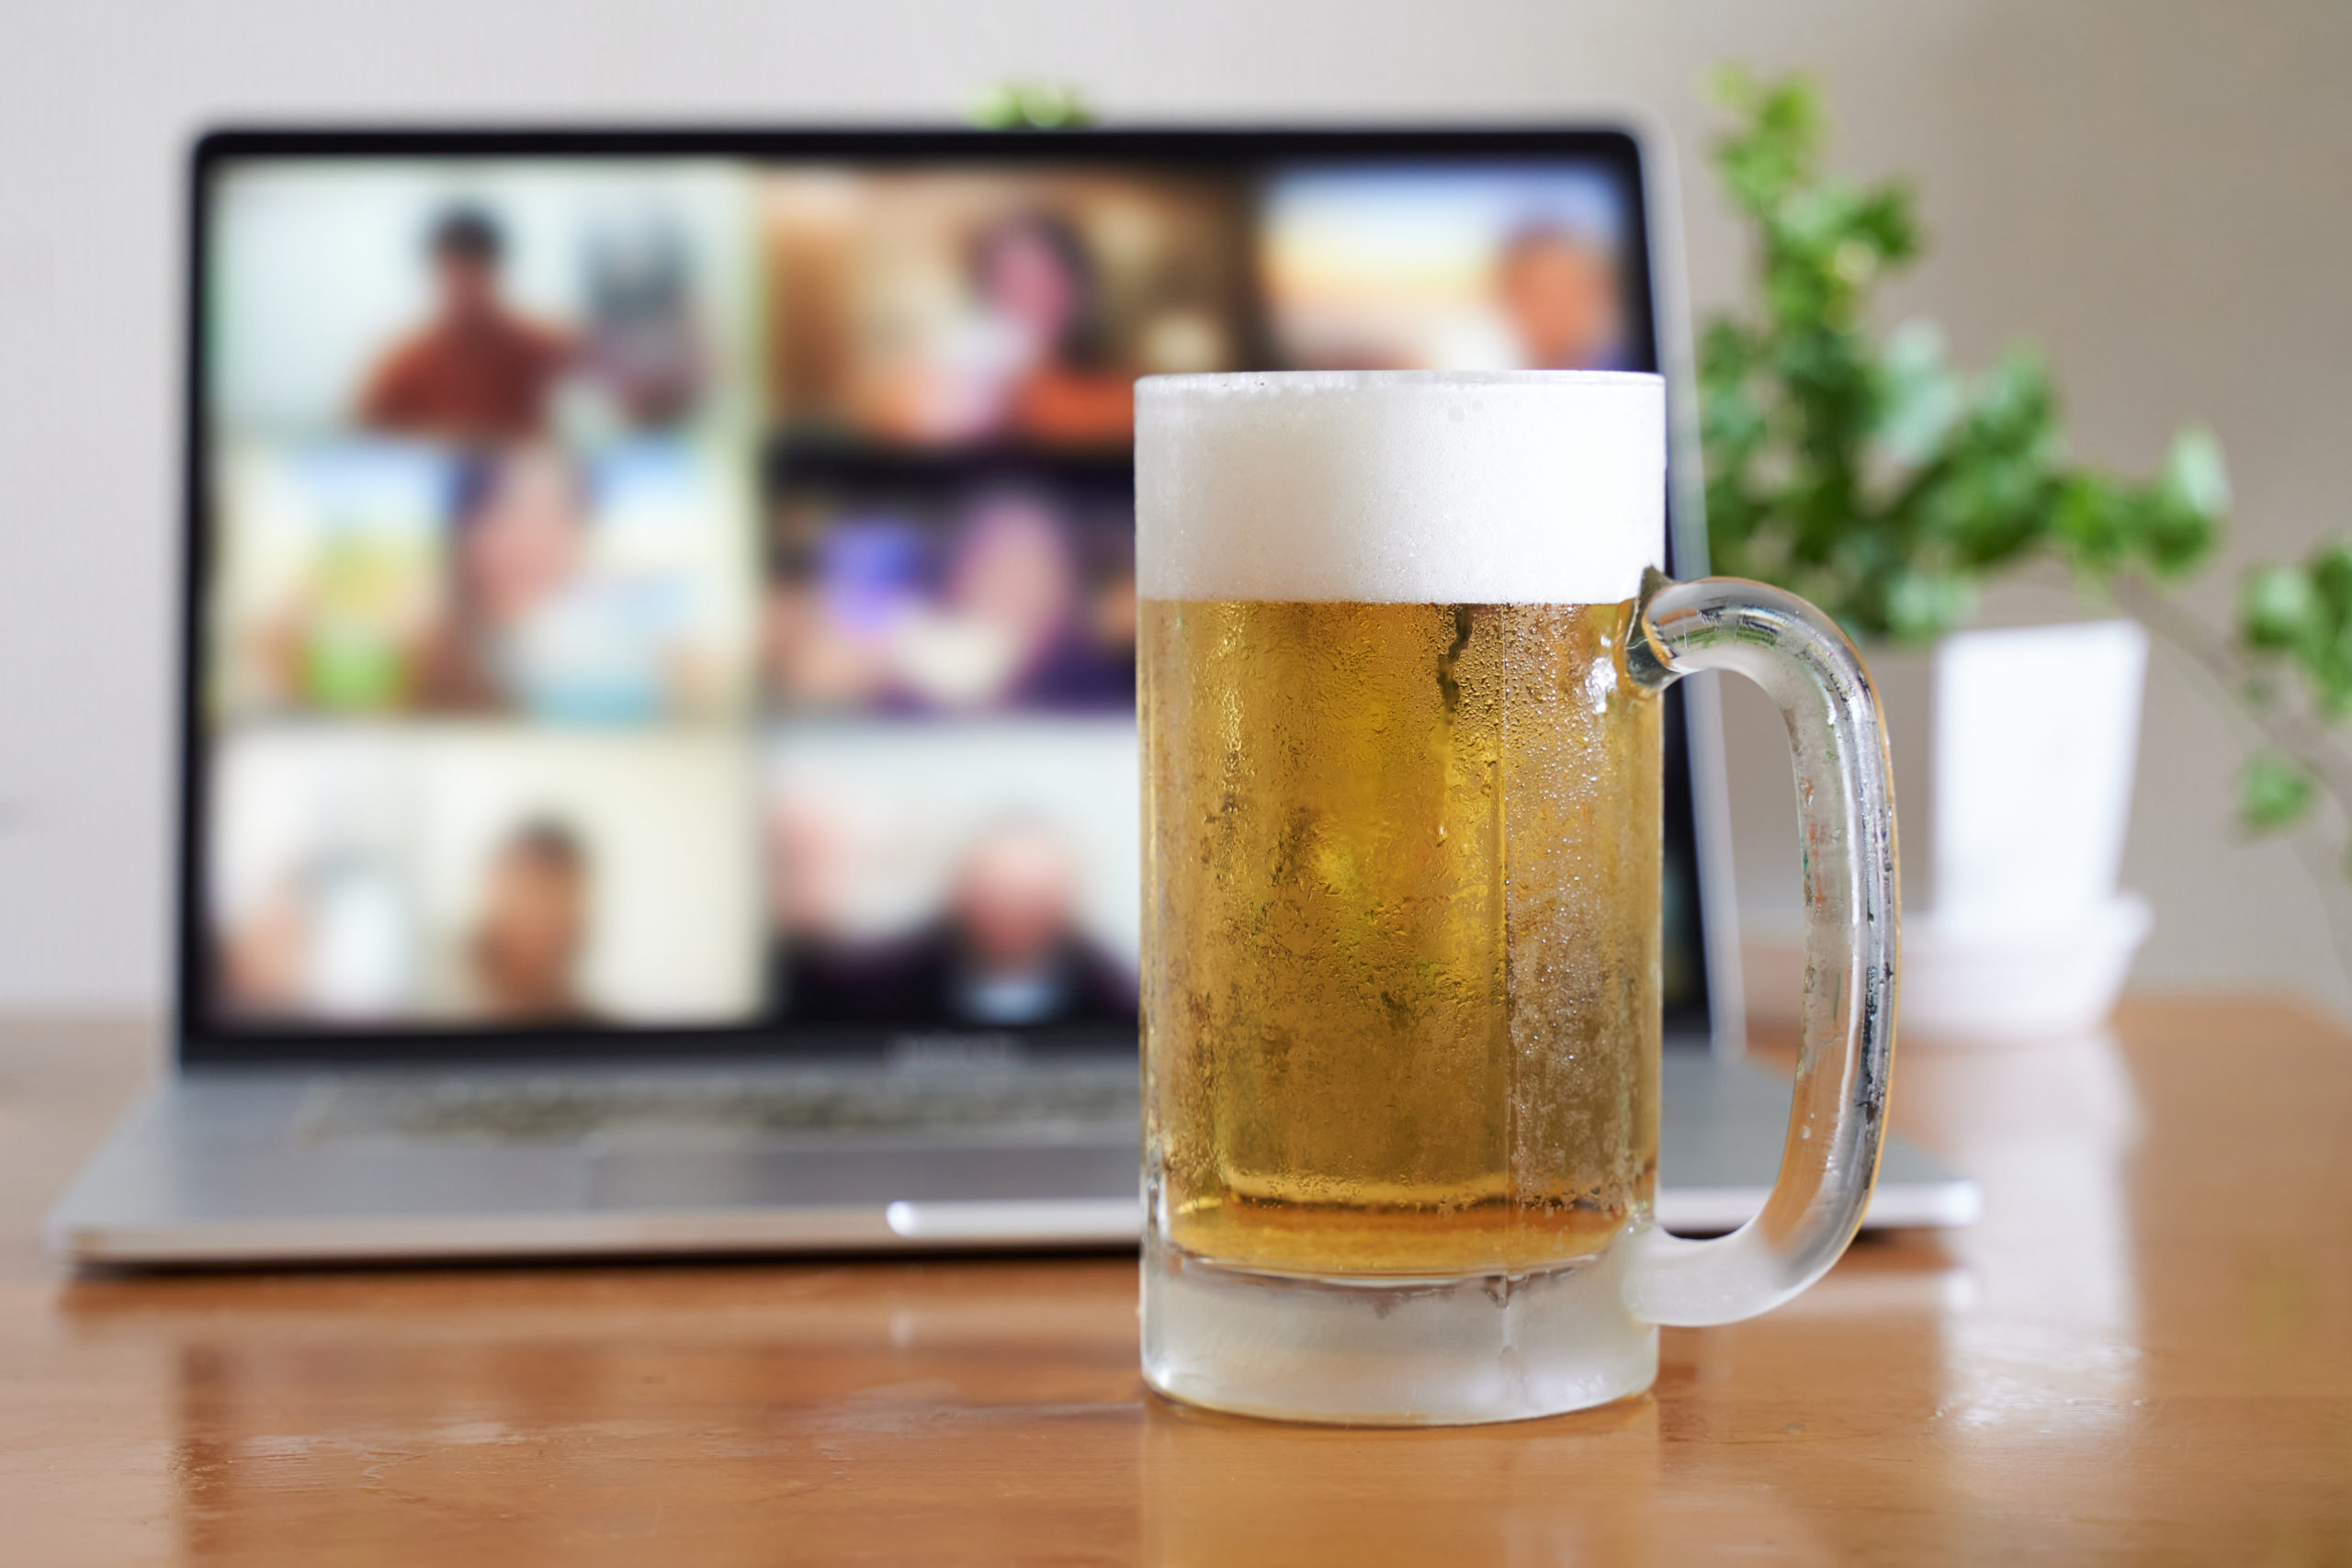 A mug of beer sits in front of a laptop on a table.